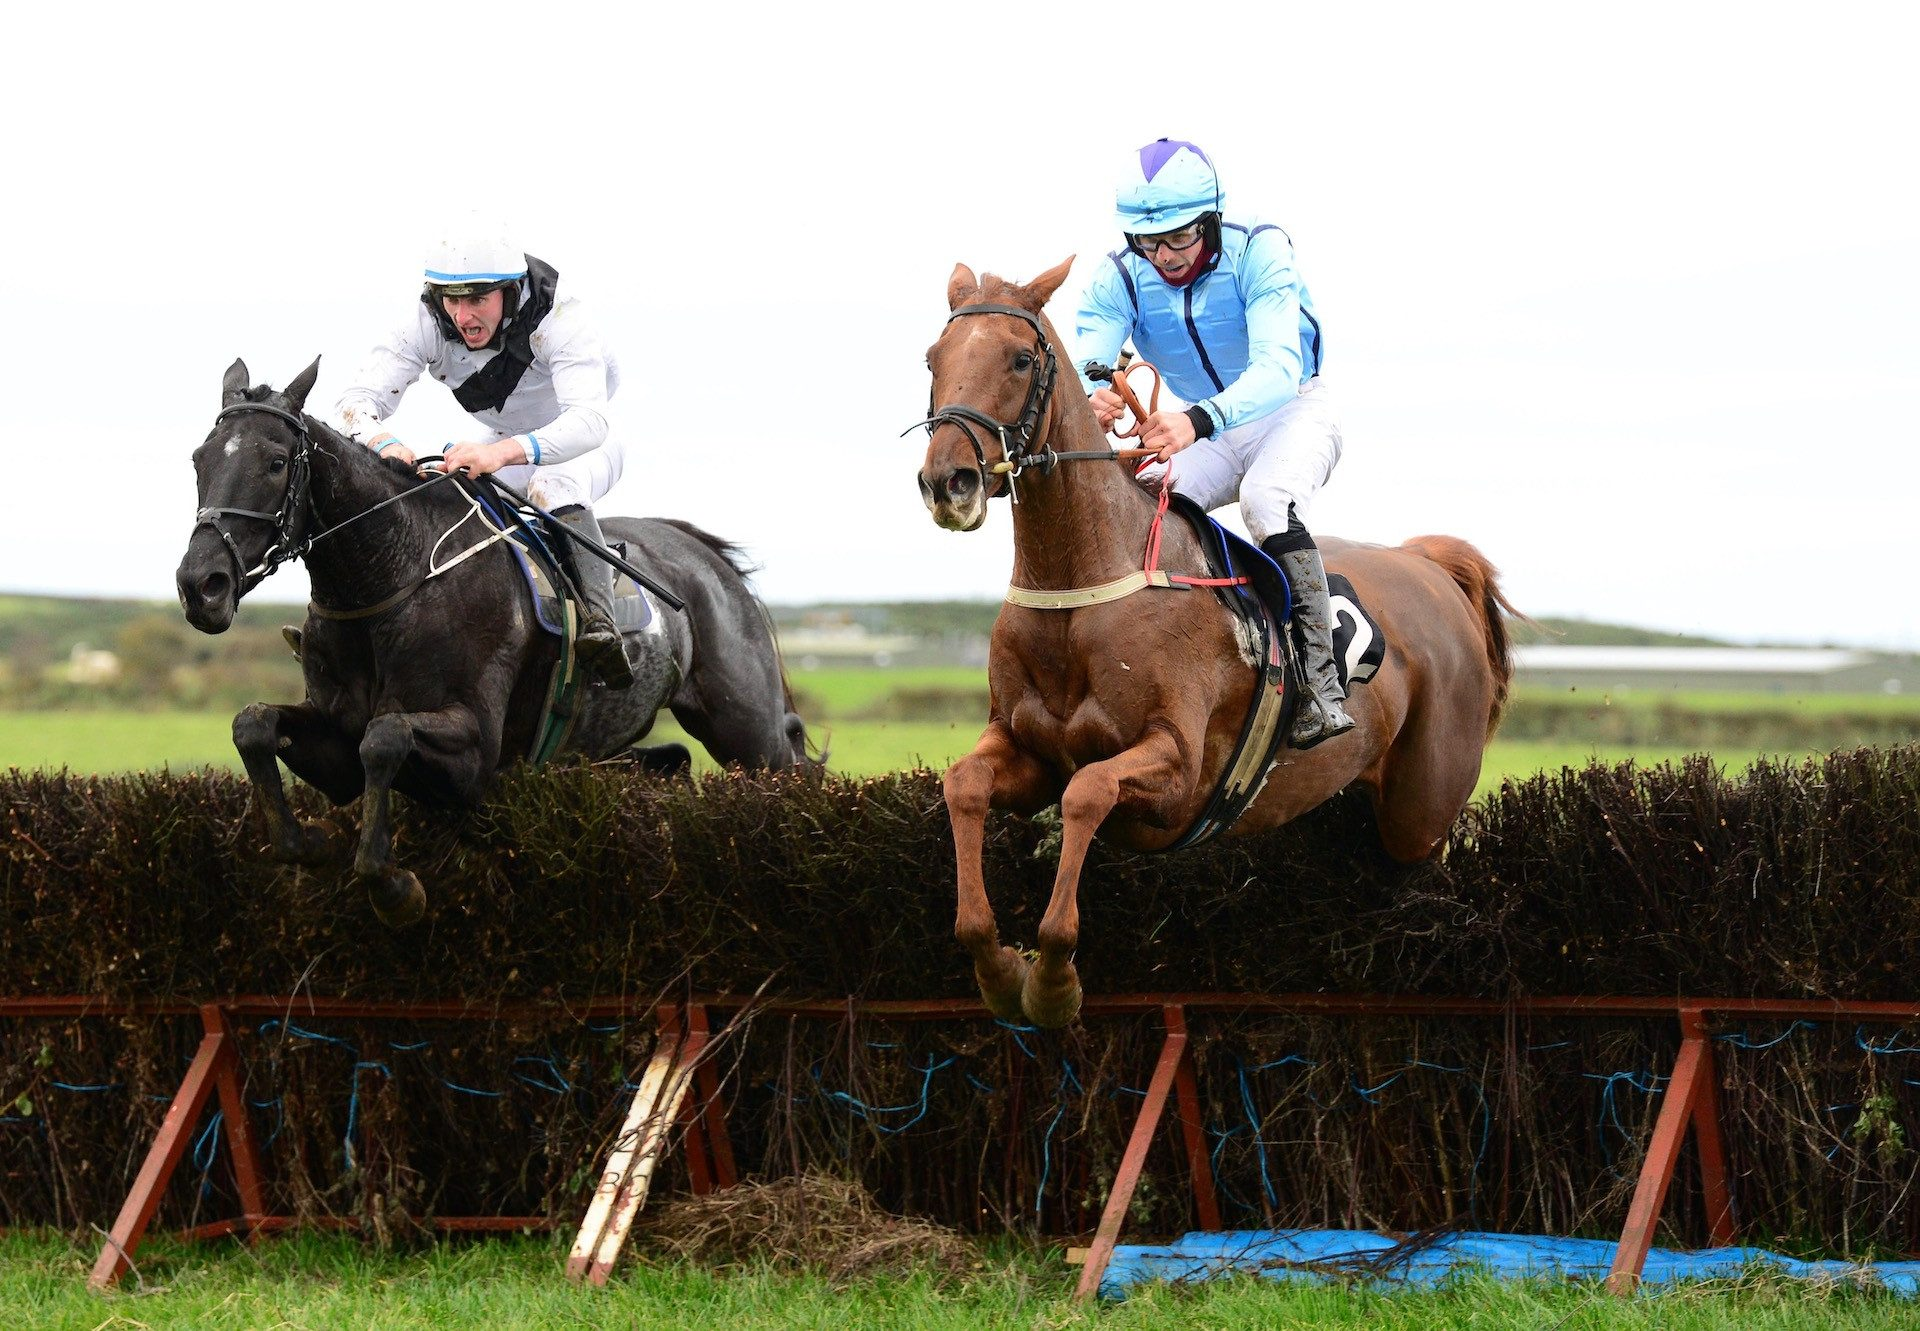 Well Briefed (Mahler) Wins The Mares Maiden At Portrush